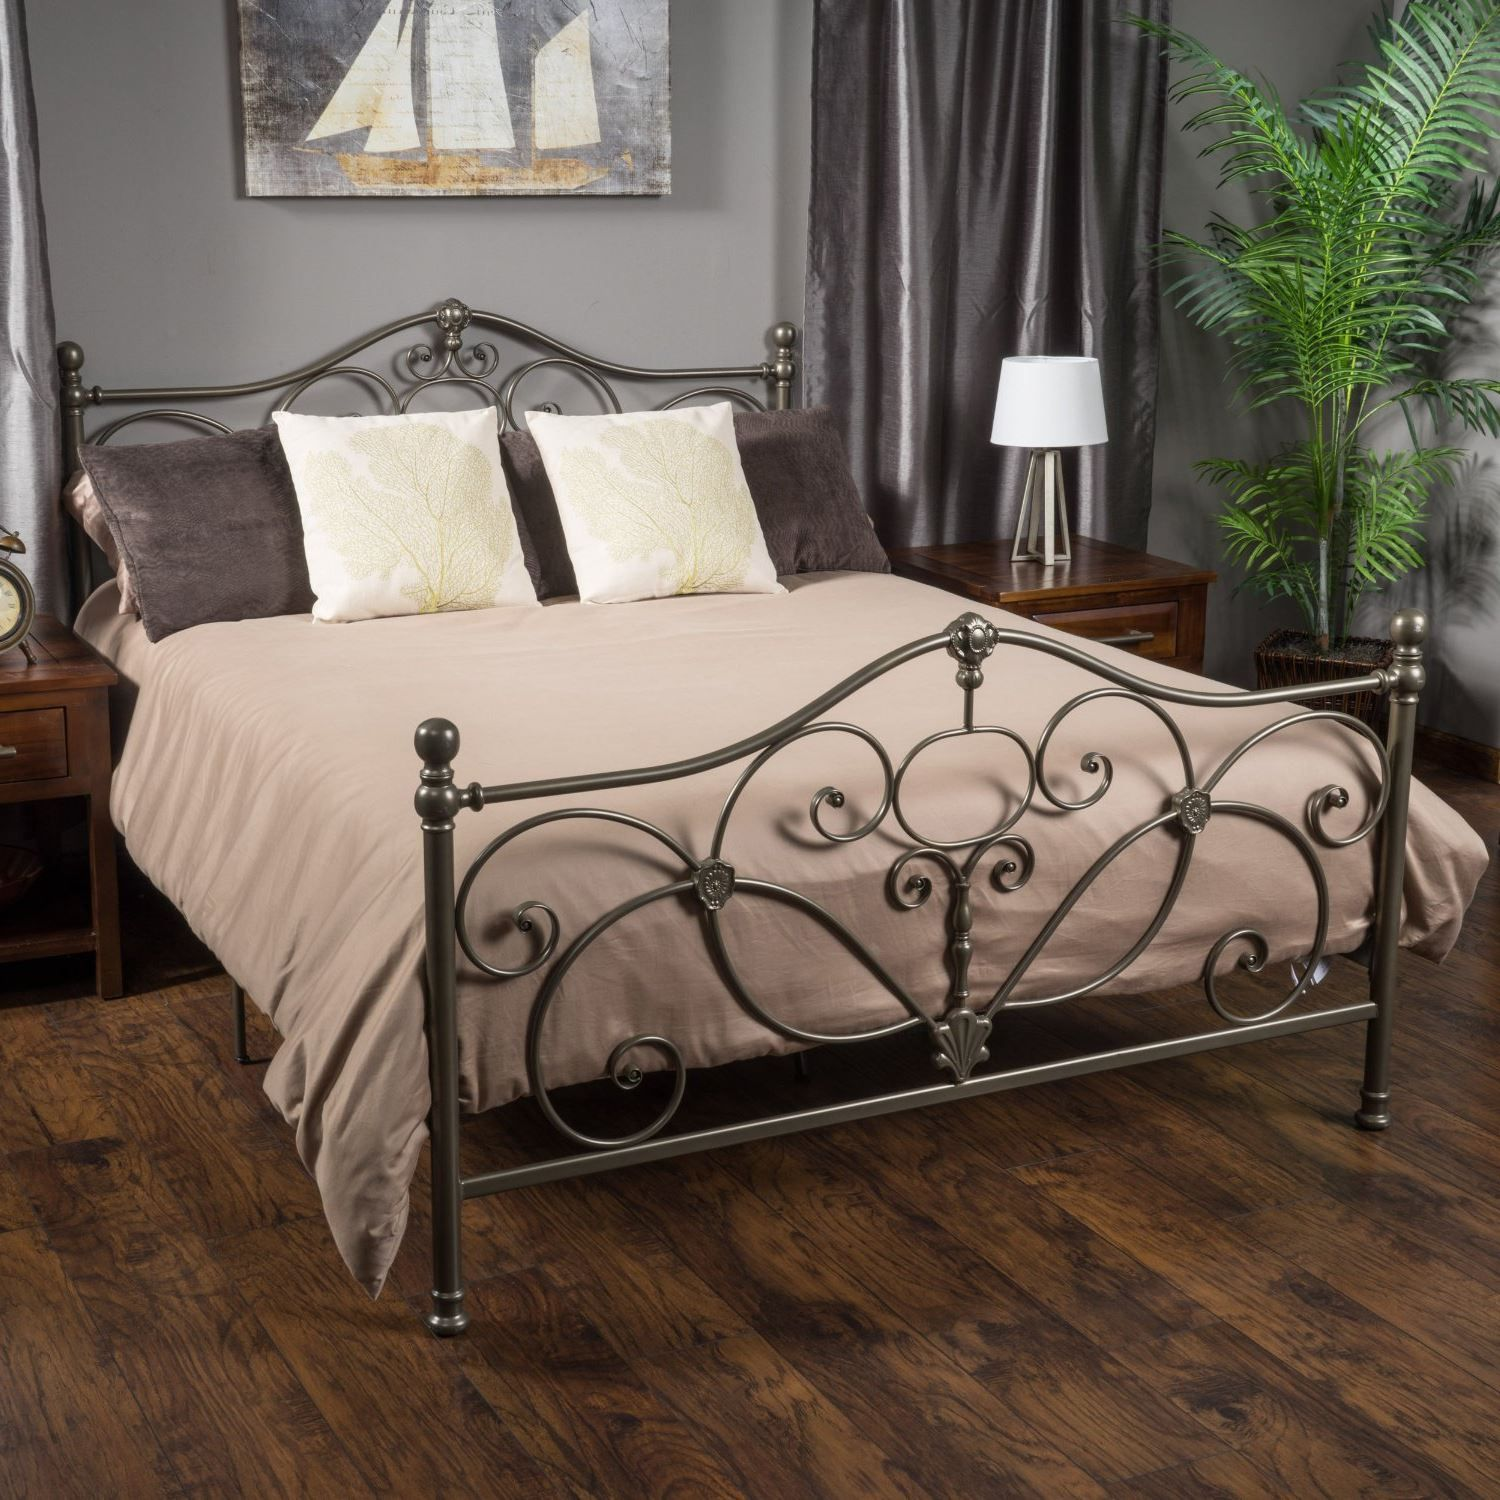 Kelford Champagne Iron Metal Bed Frame King Size (With